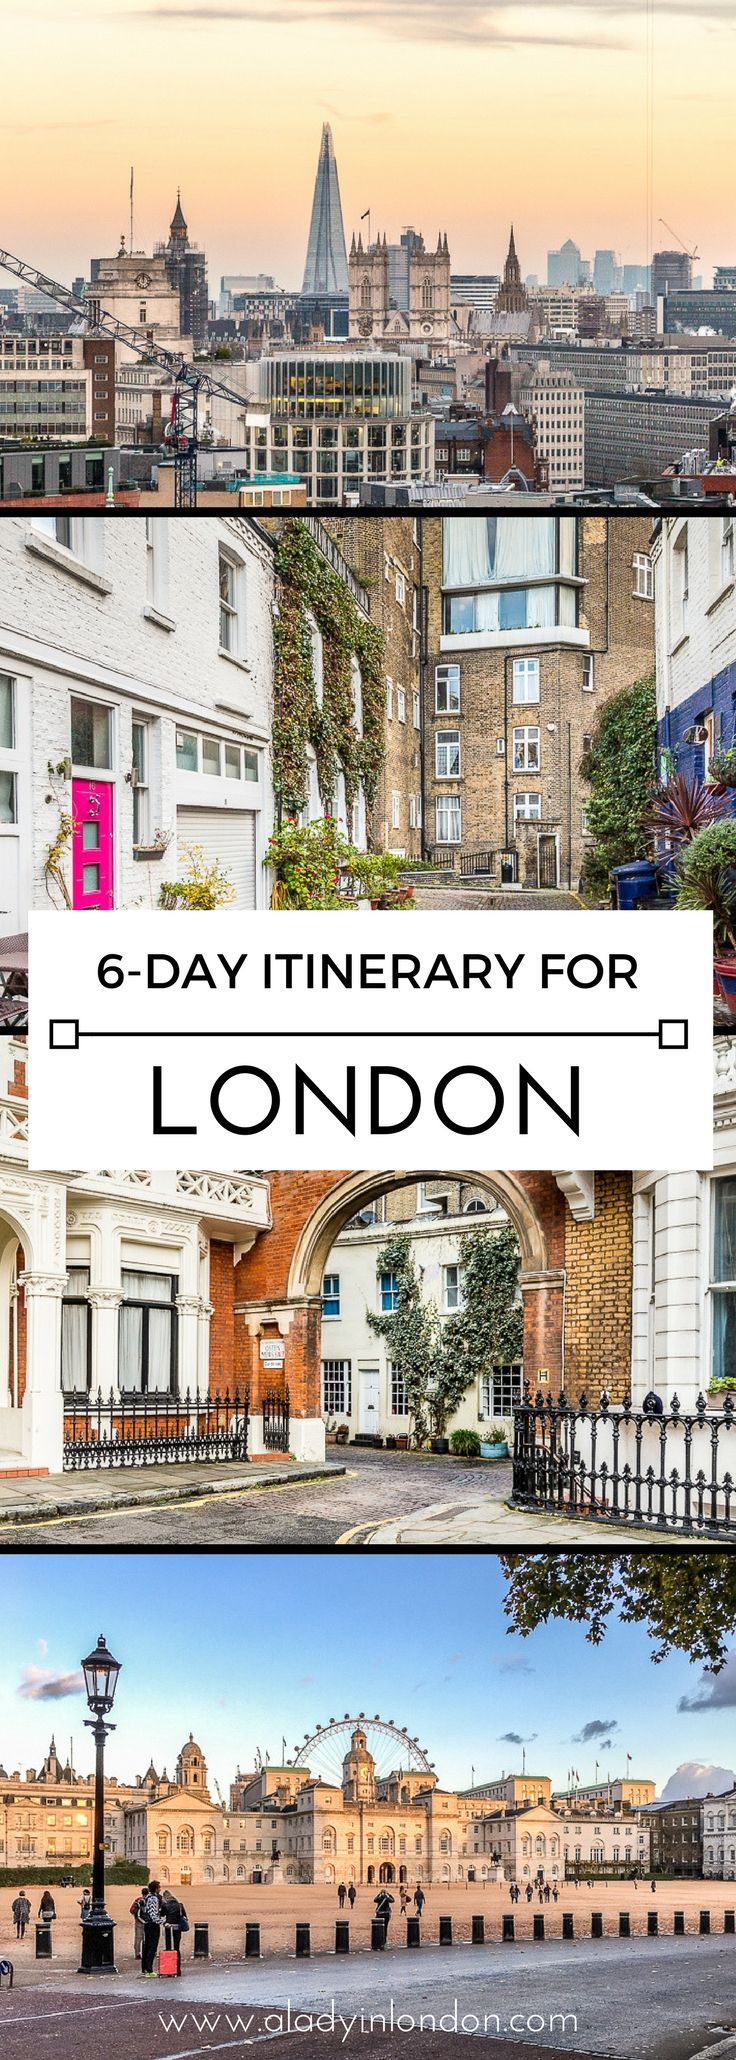 6 Days In London Itinerary How To Have A Perfect Trip To London London Travel England Travel Travel Itinerary